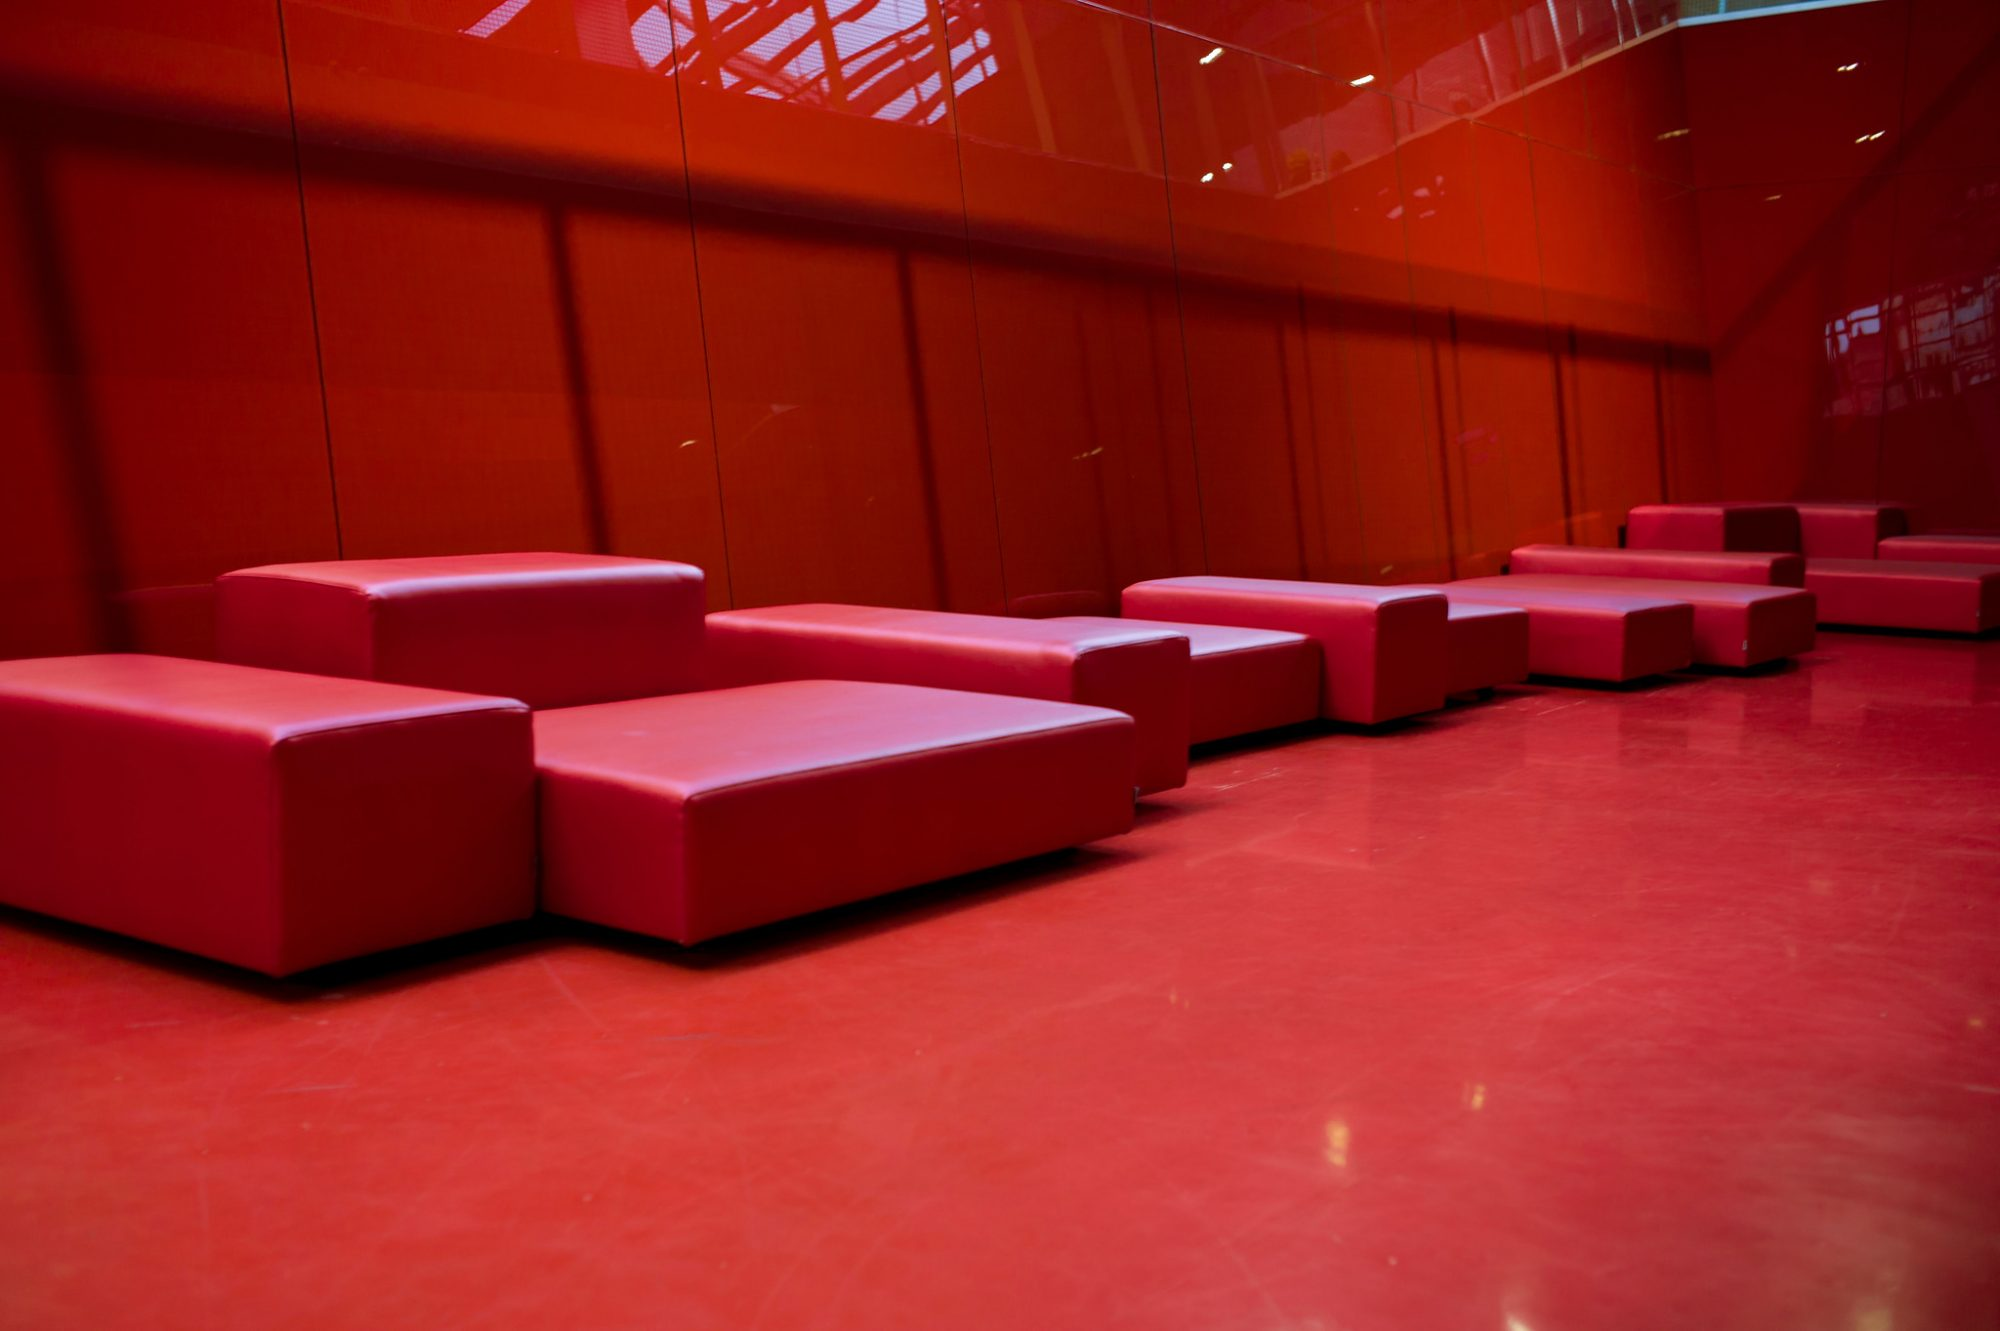 Doudna Red Room